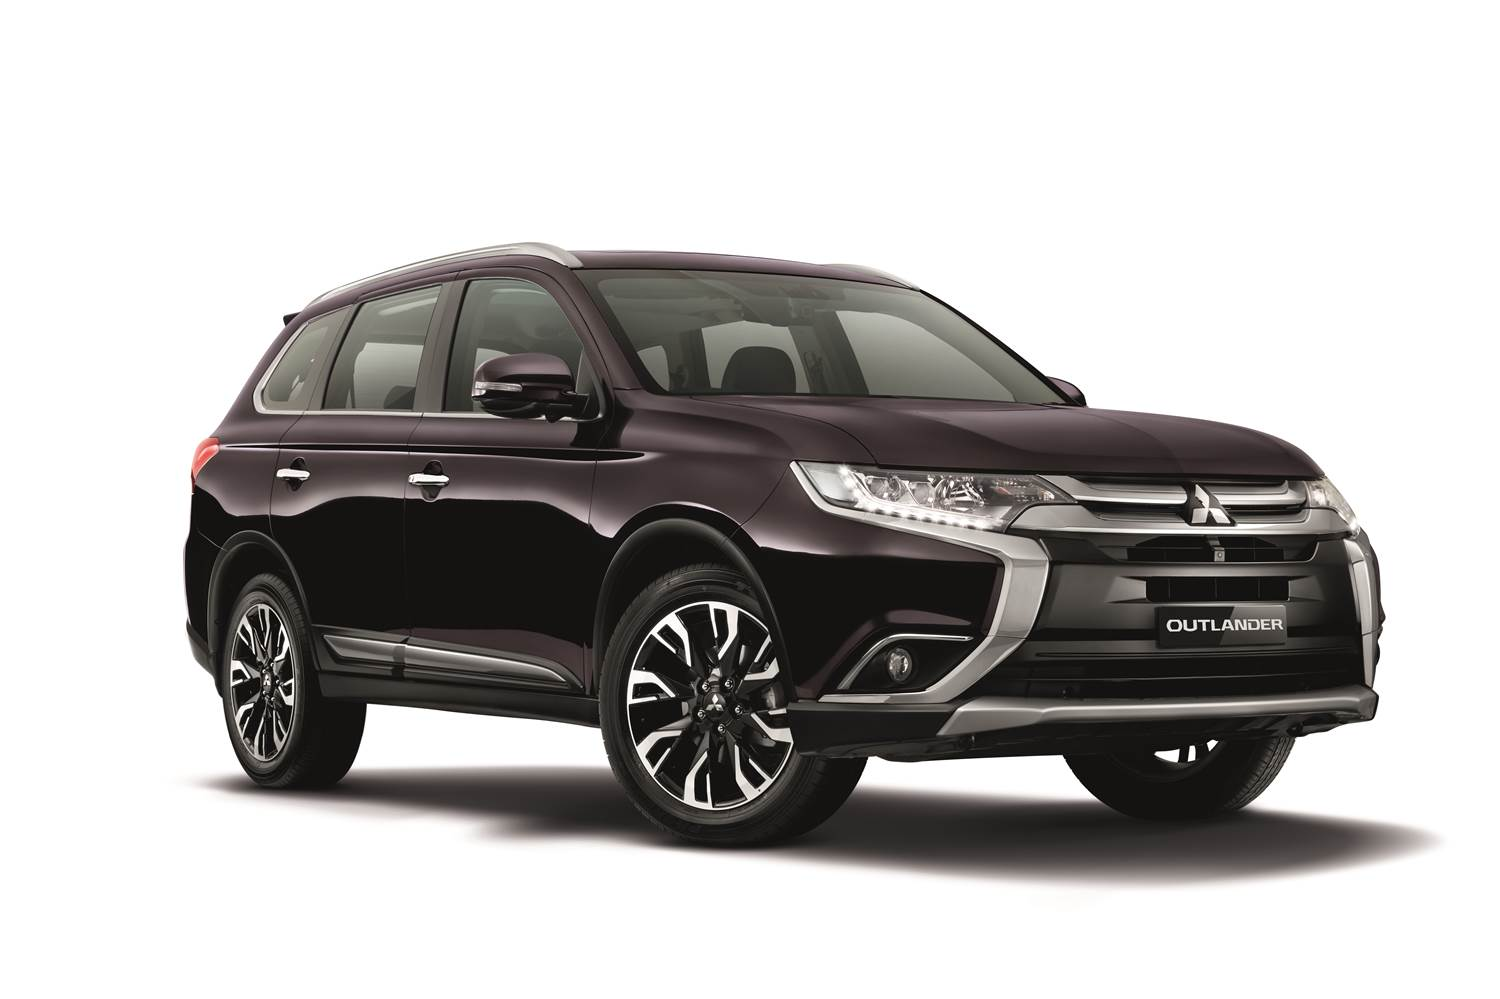 rear large crossover outlander en view s suv showroom canada sterling vehicle awc angle silver sawc gt mitsubishi